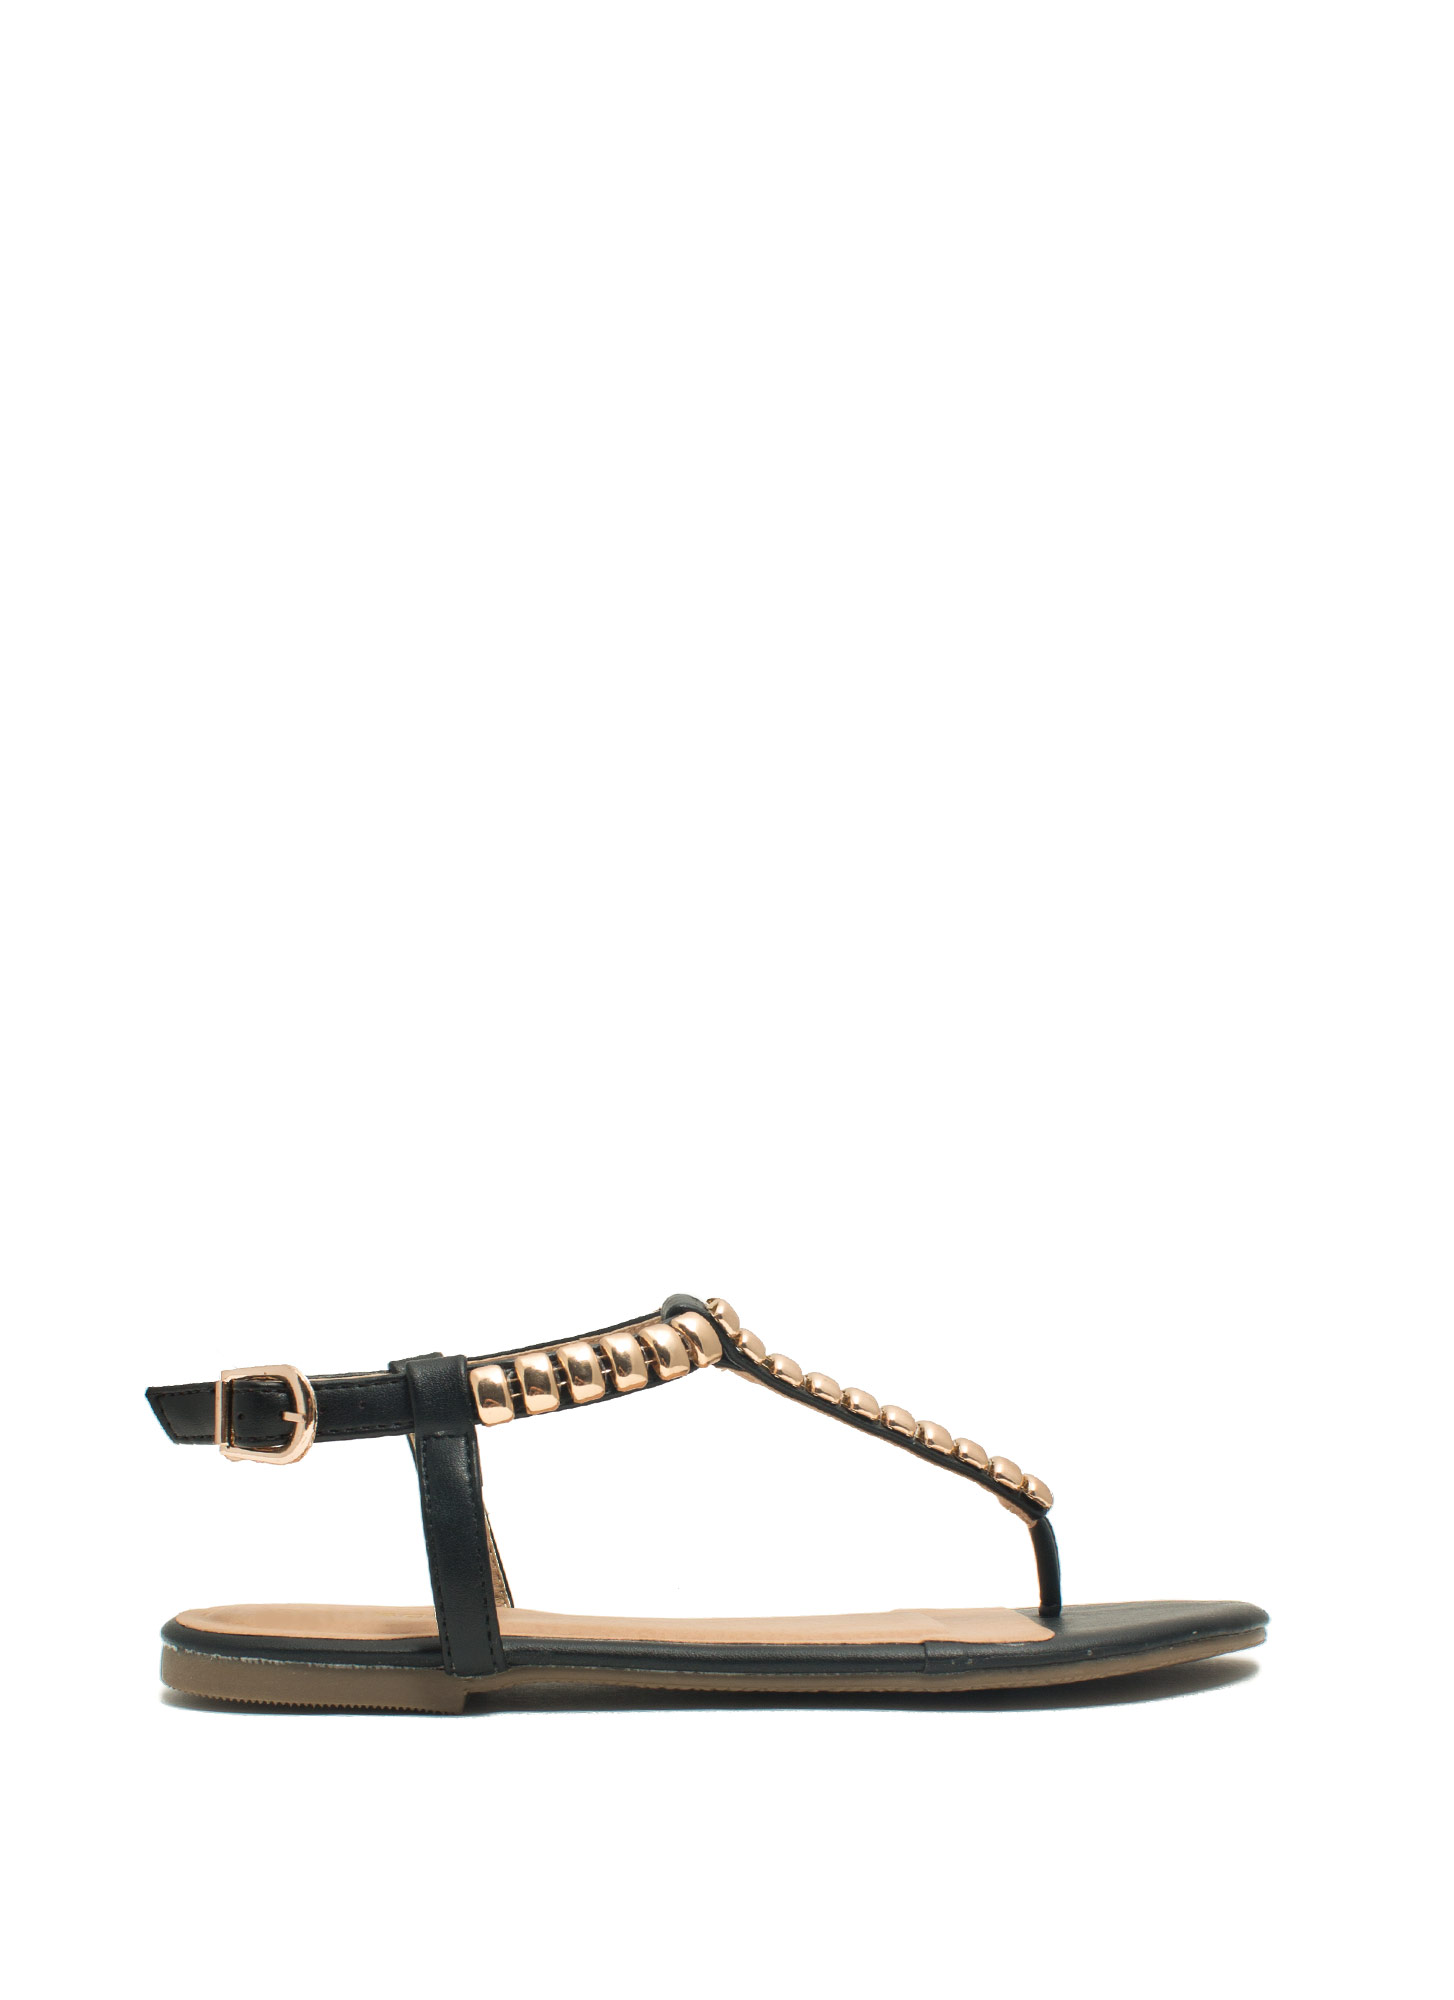 Tile Me Something Good Thong Sandals BLACK